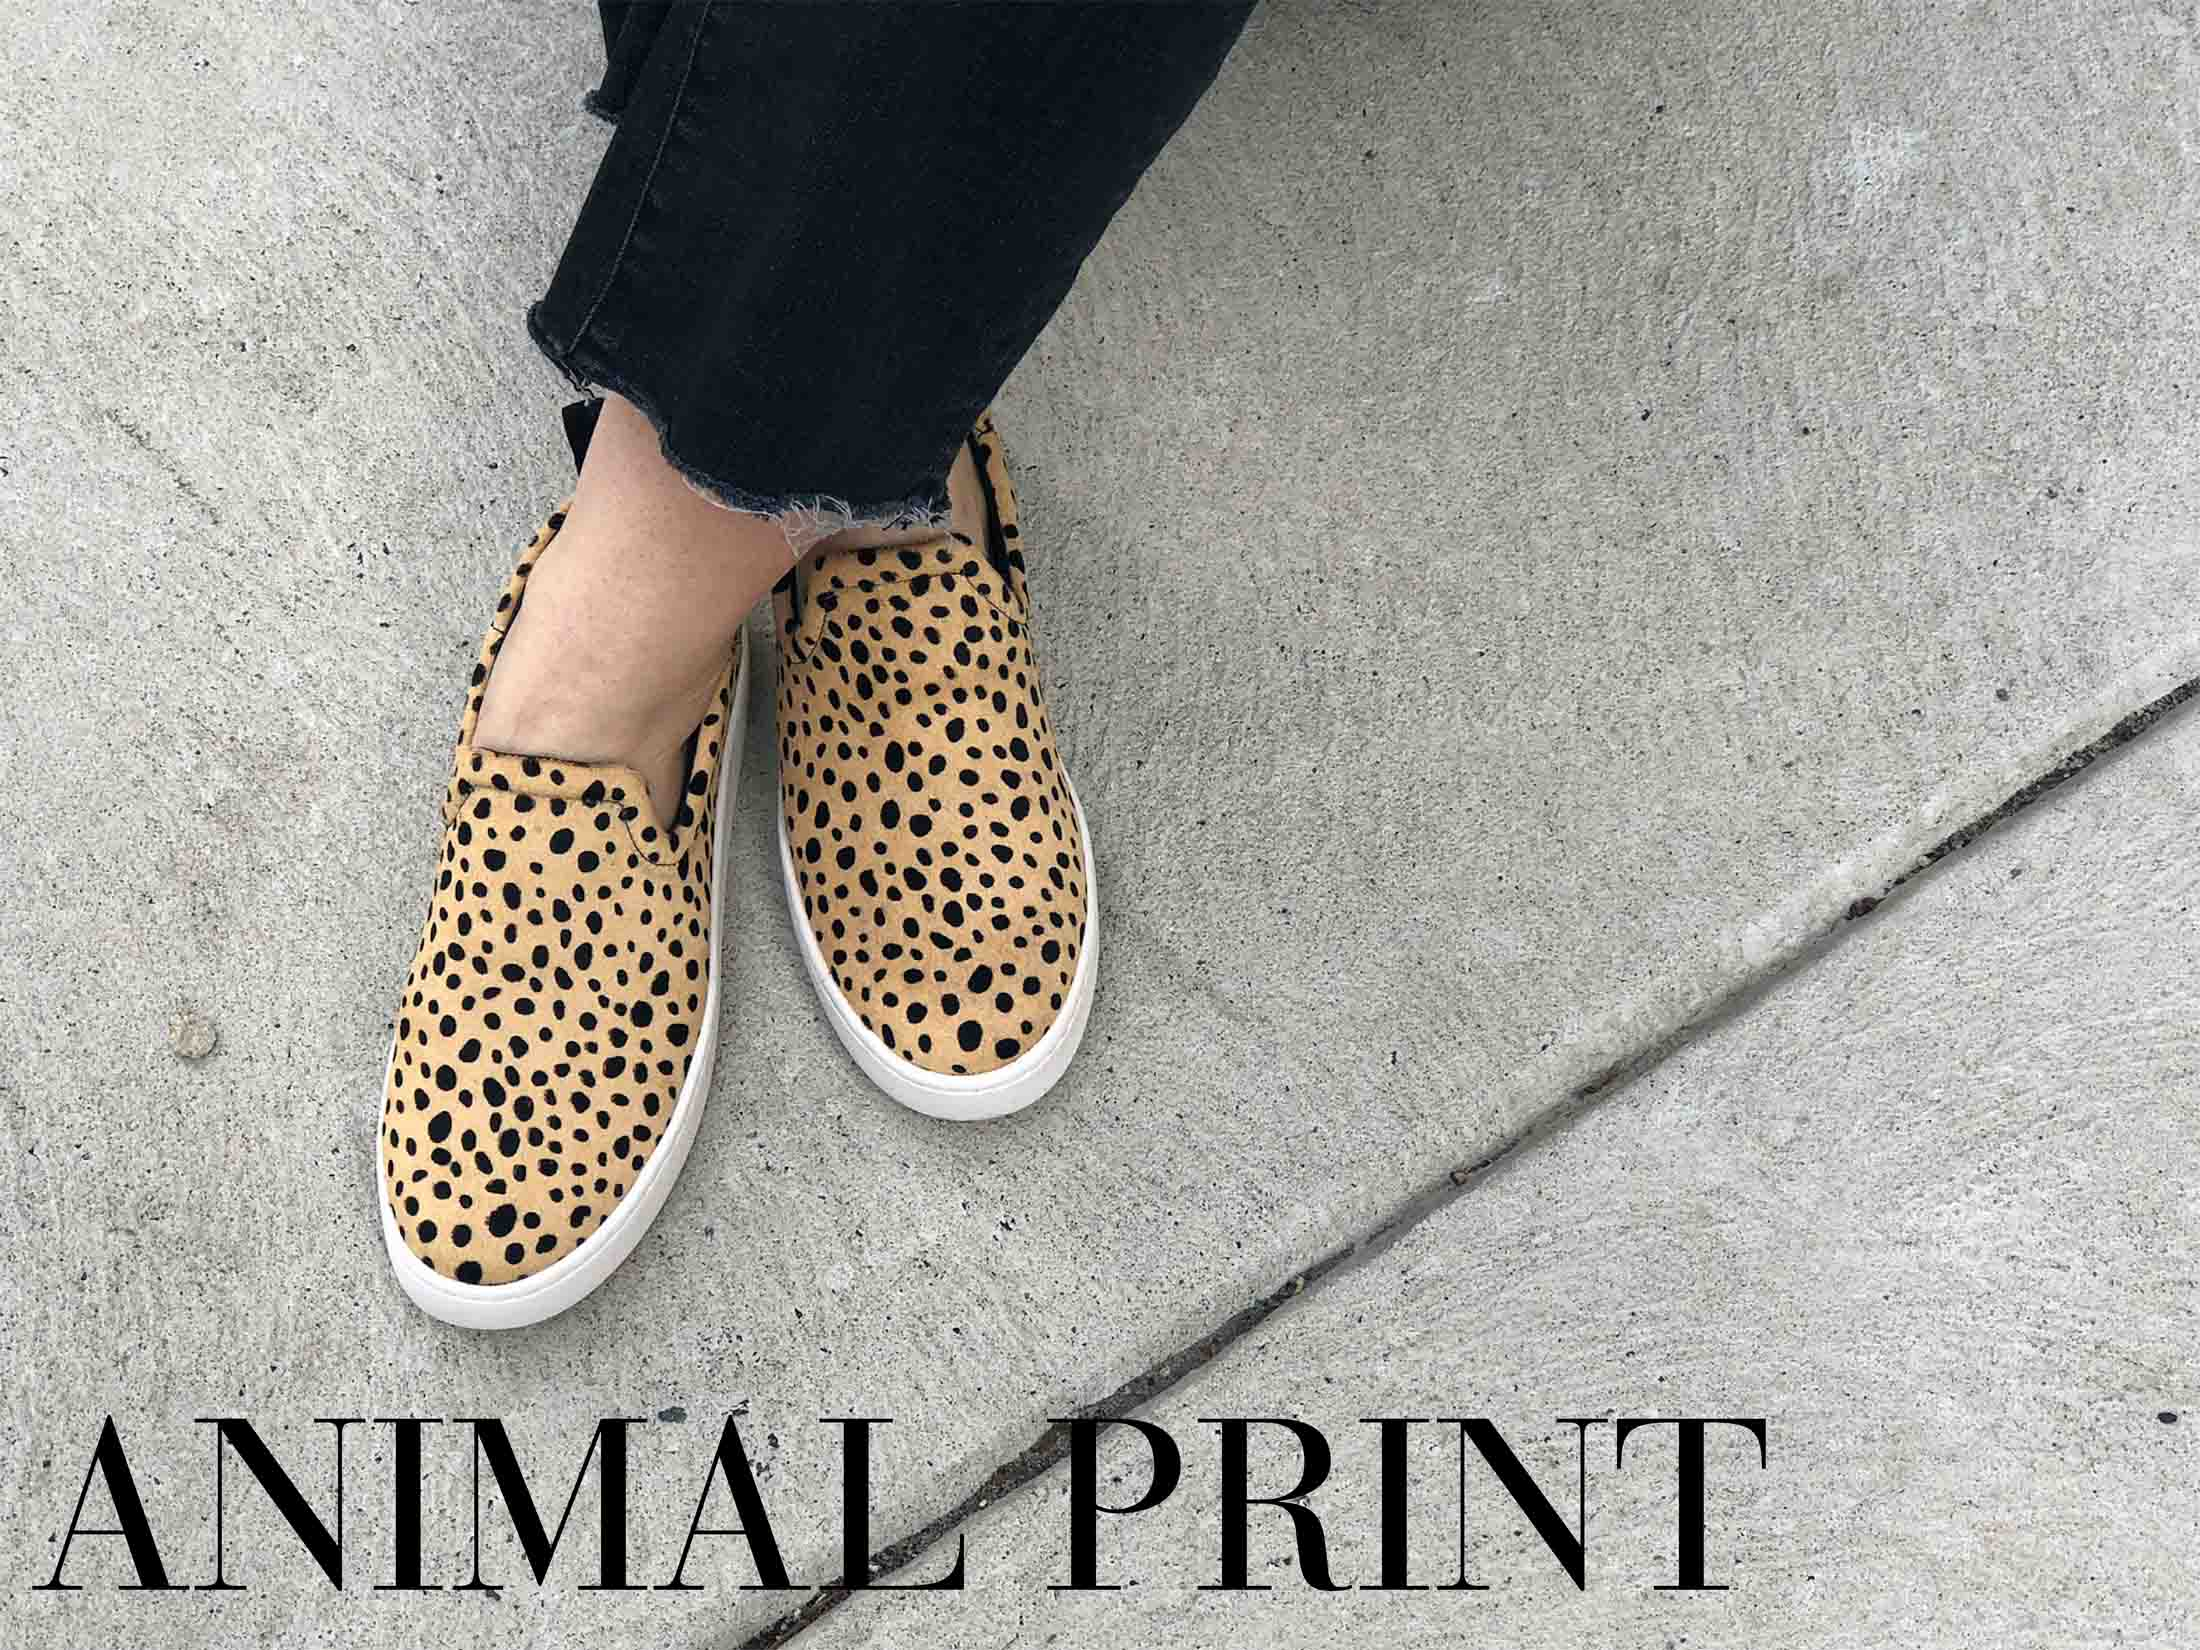 Put on the sneakers & call it Spring! It's time to show some ankle, so check out the animal prints, bright whites & bold colors in our tennis shoe roundup.